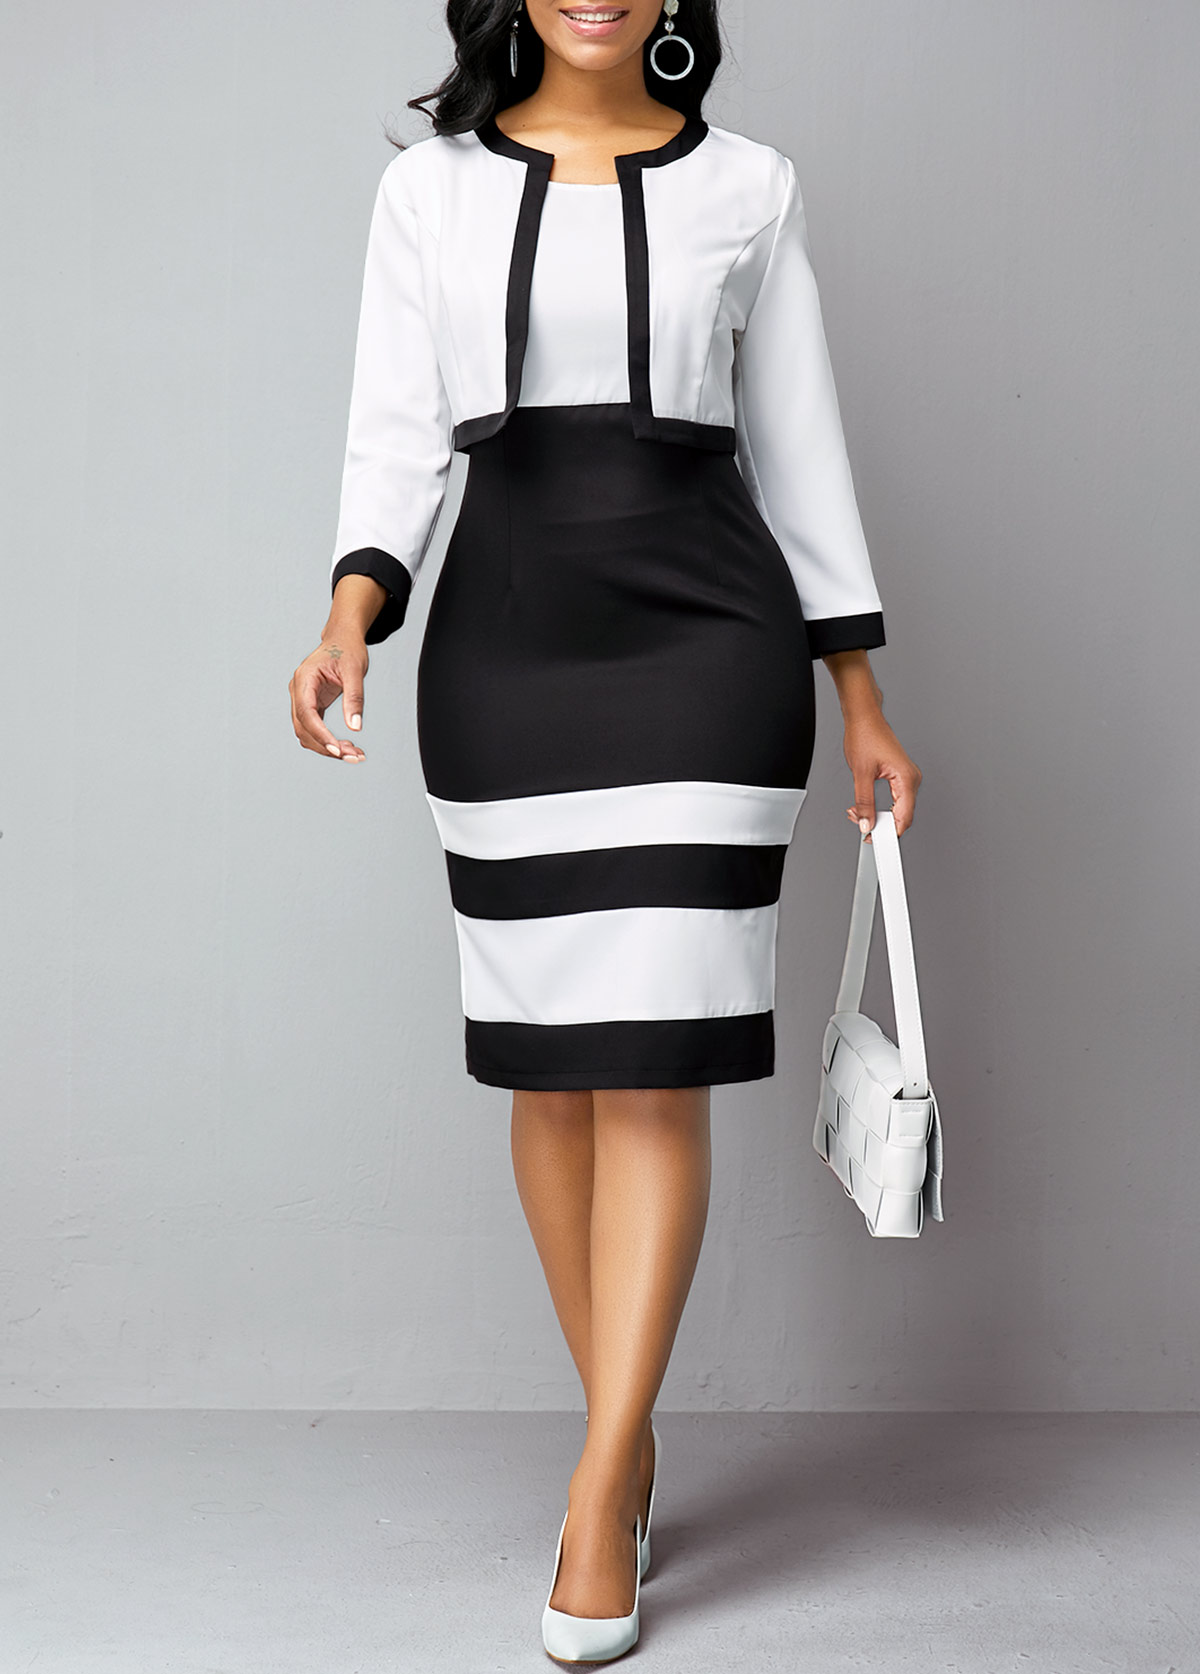 Contrast Piping Cardigan and High Waist Dress